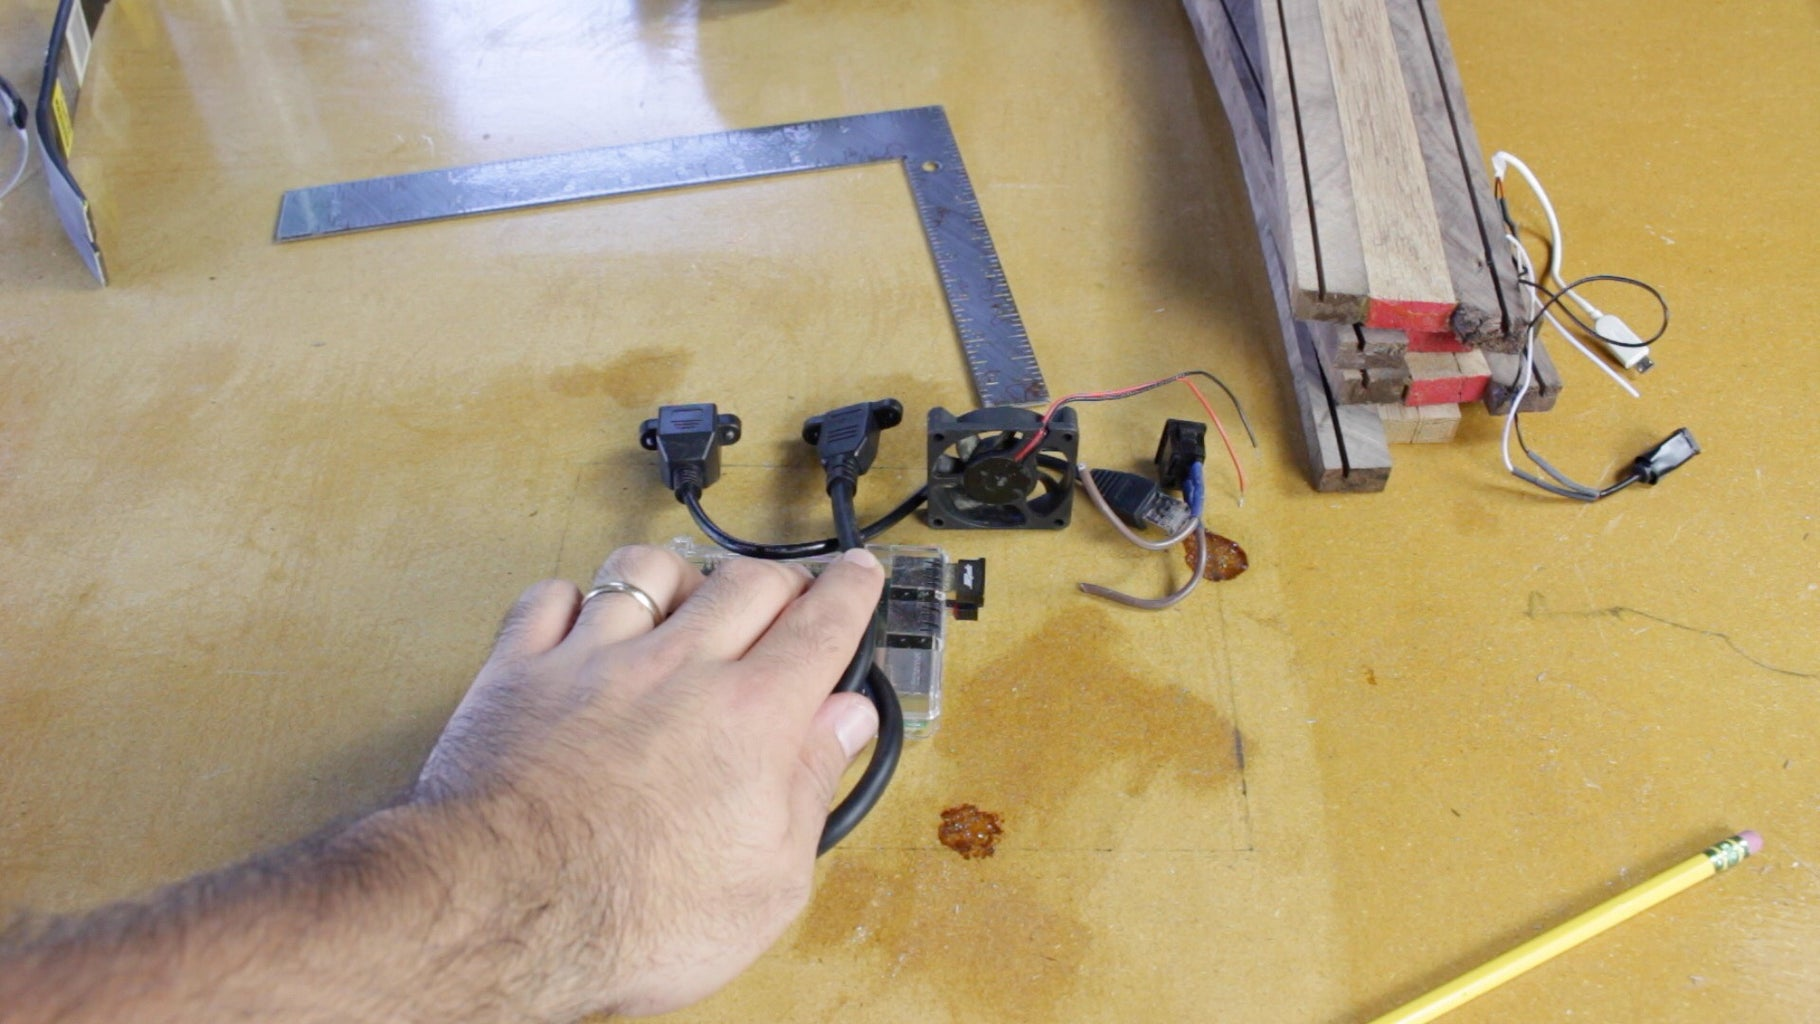 Cutting for the Panel Mount Connectors